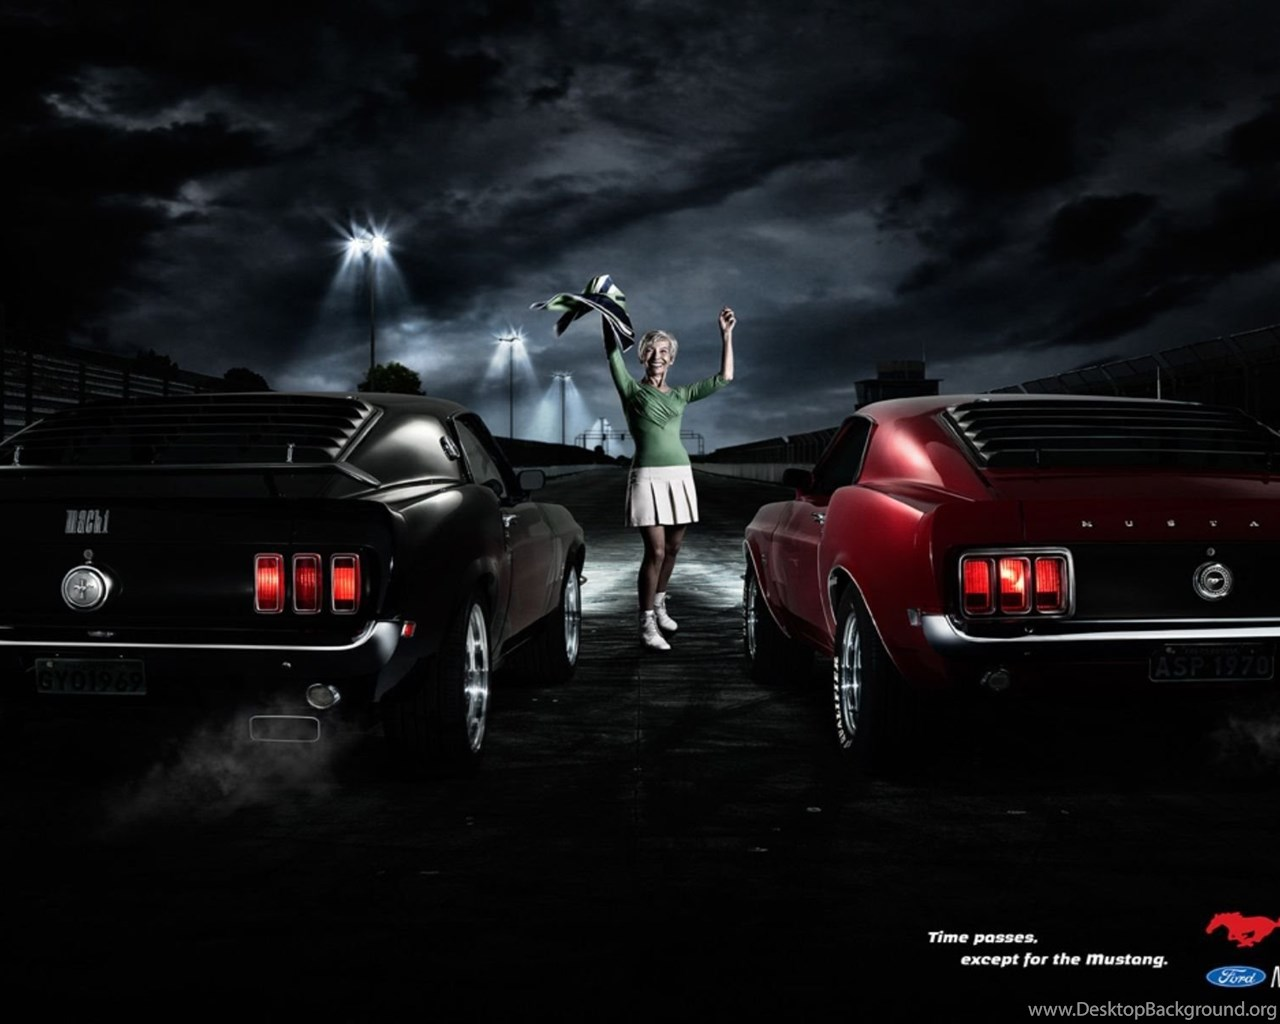 Mustang Quotes Mustang Girl Quotesquotesgram Desktop Background